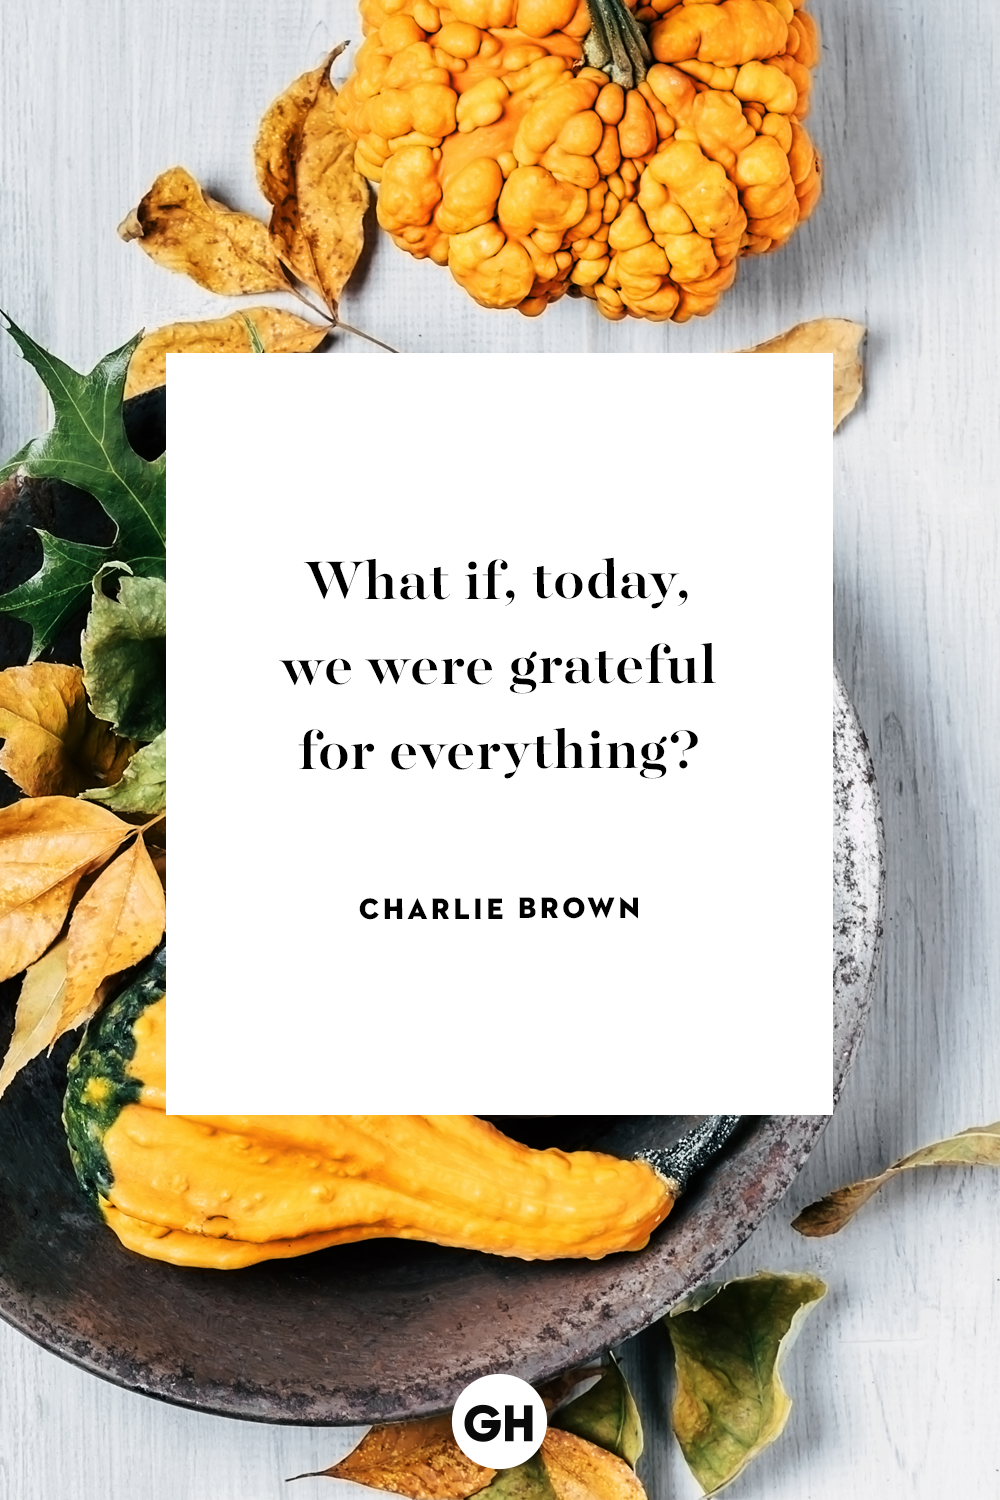 5 Best Thanksgiving Quotes - Inspirational and Funny Quotes About